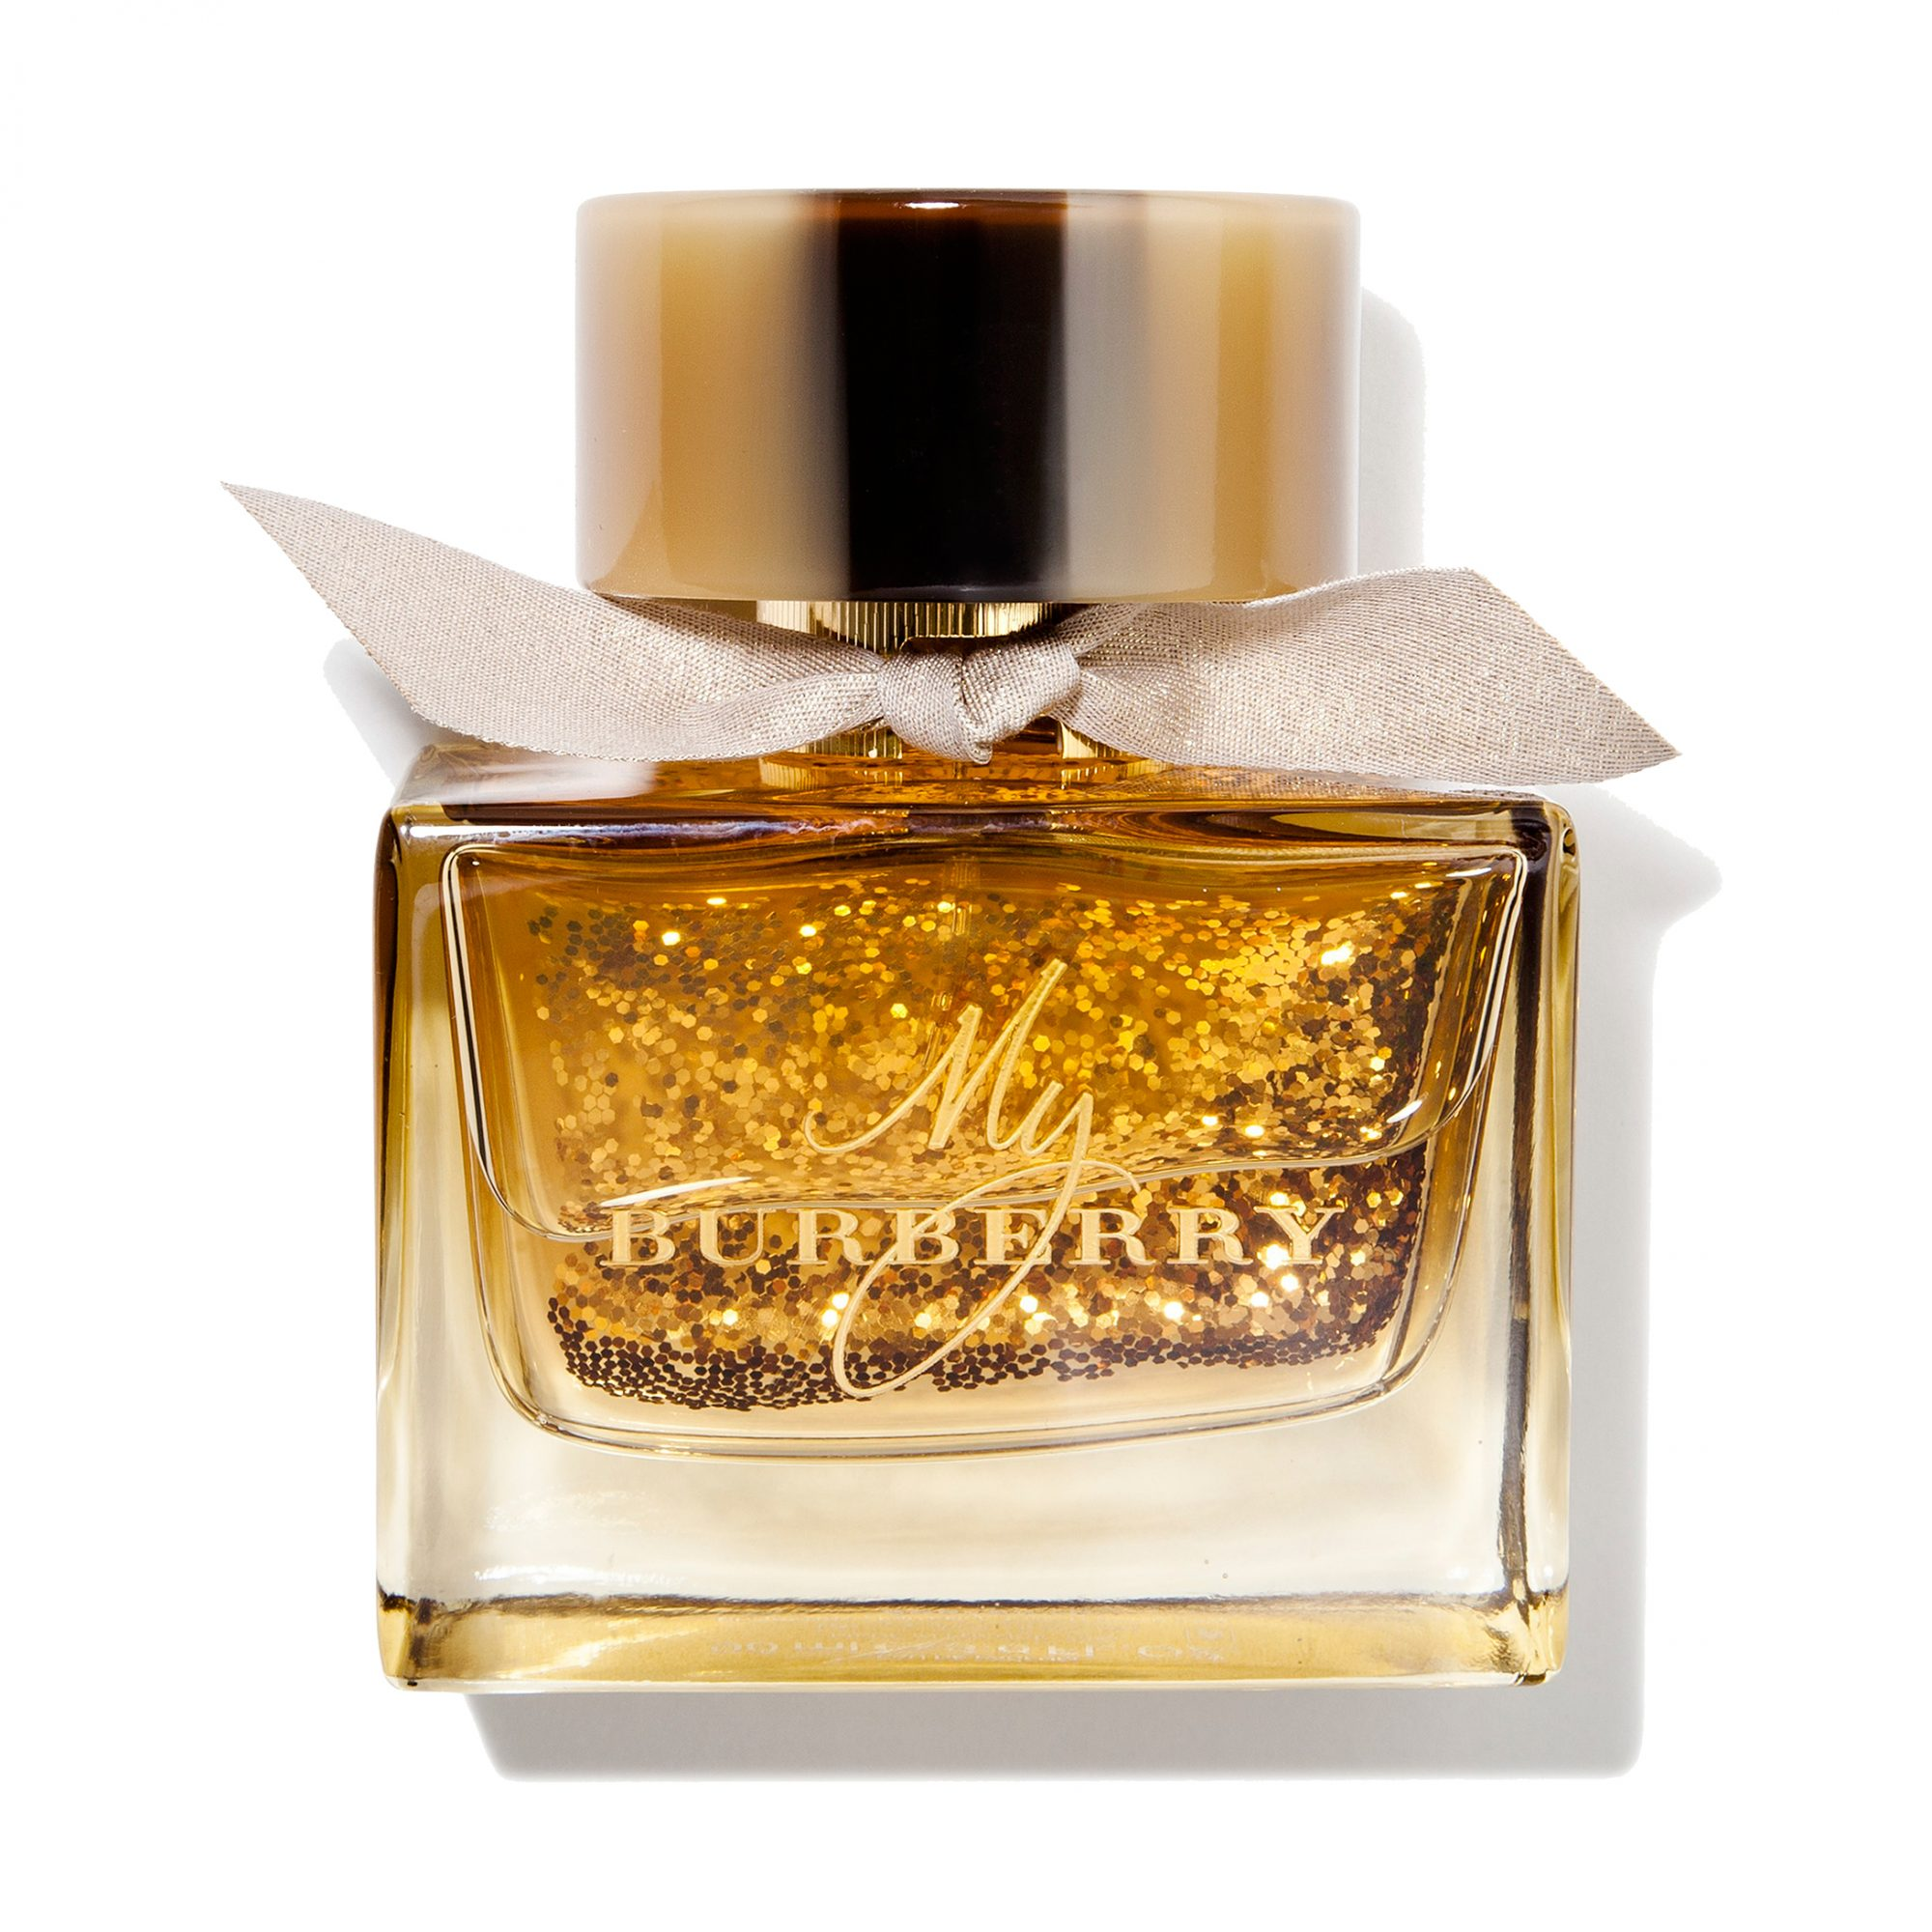 LIMITED EDITION MY BURBERRY PERFUME